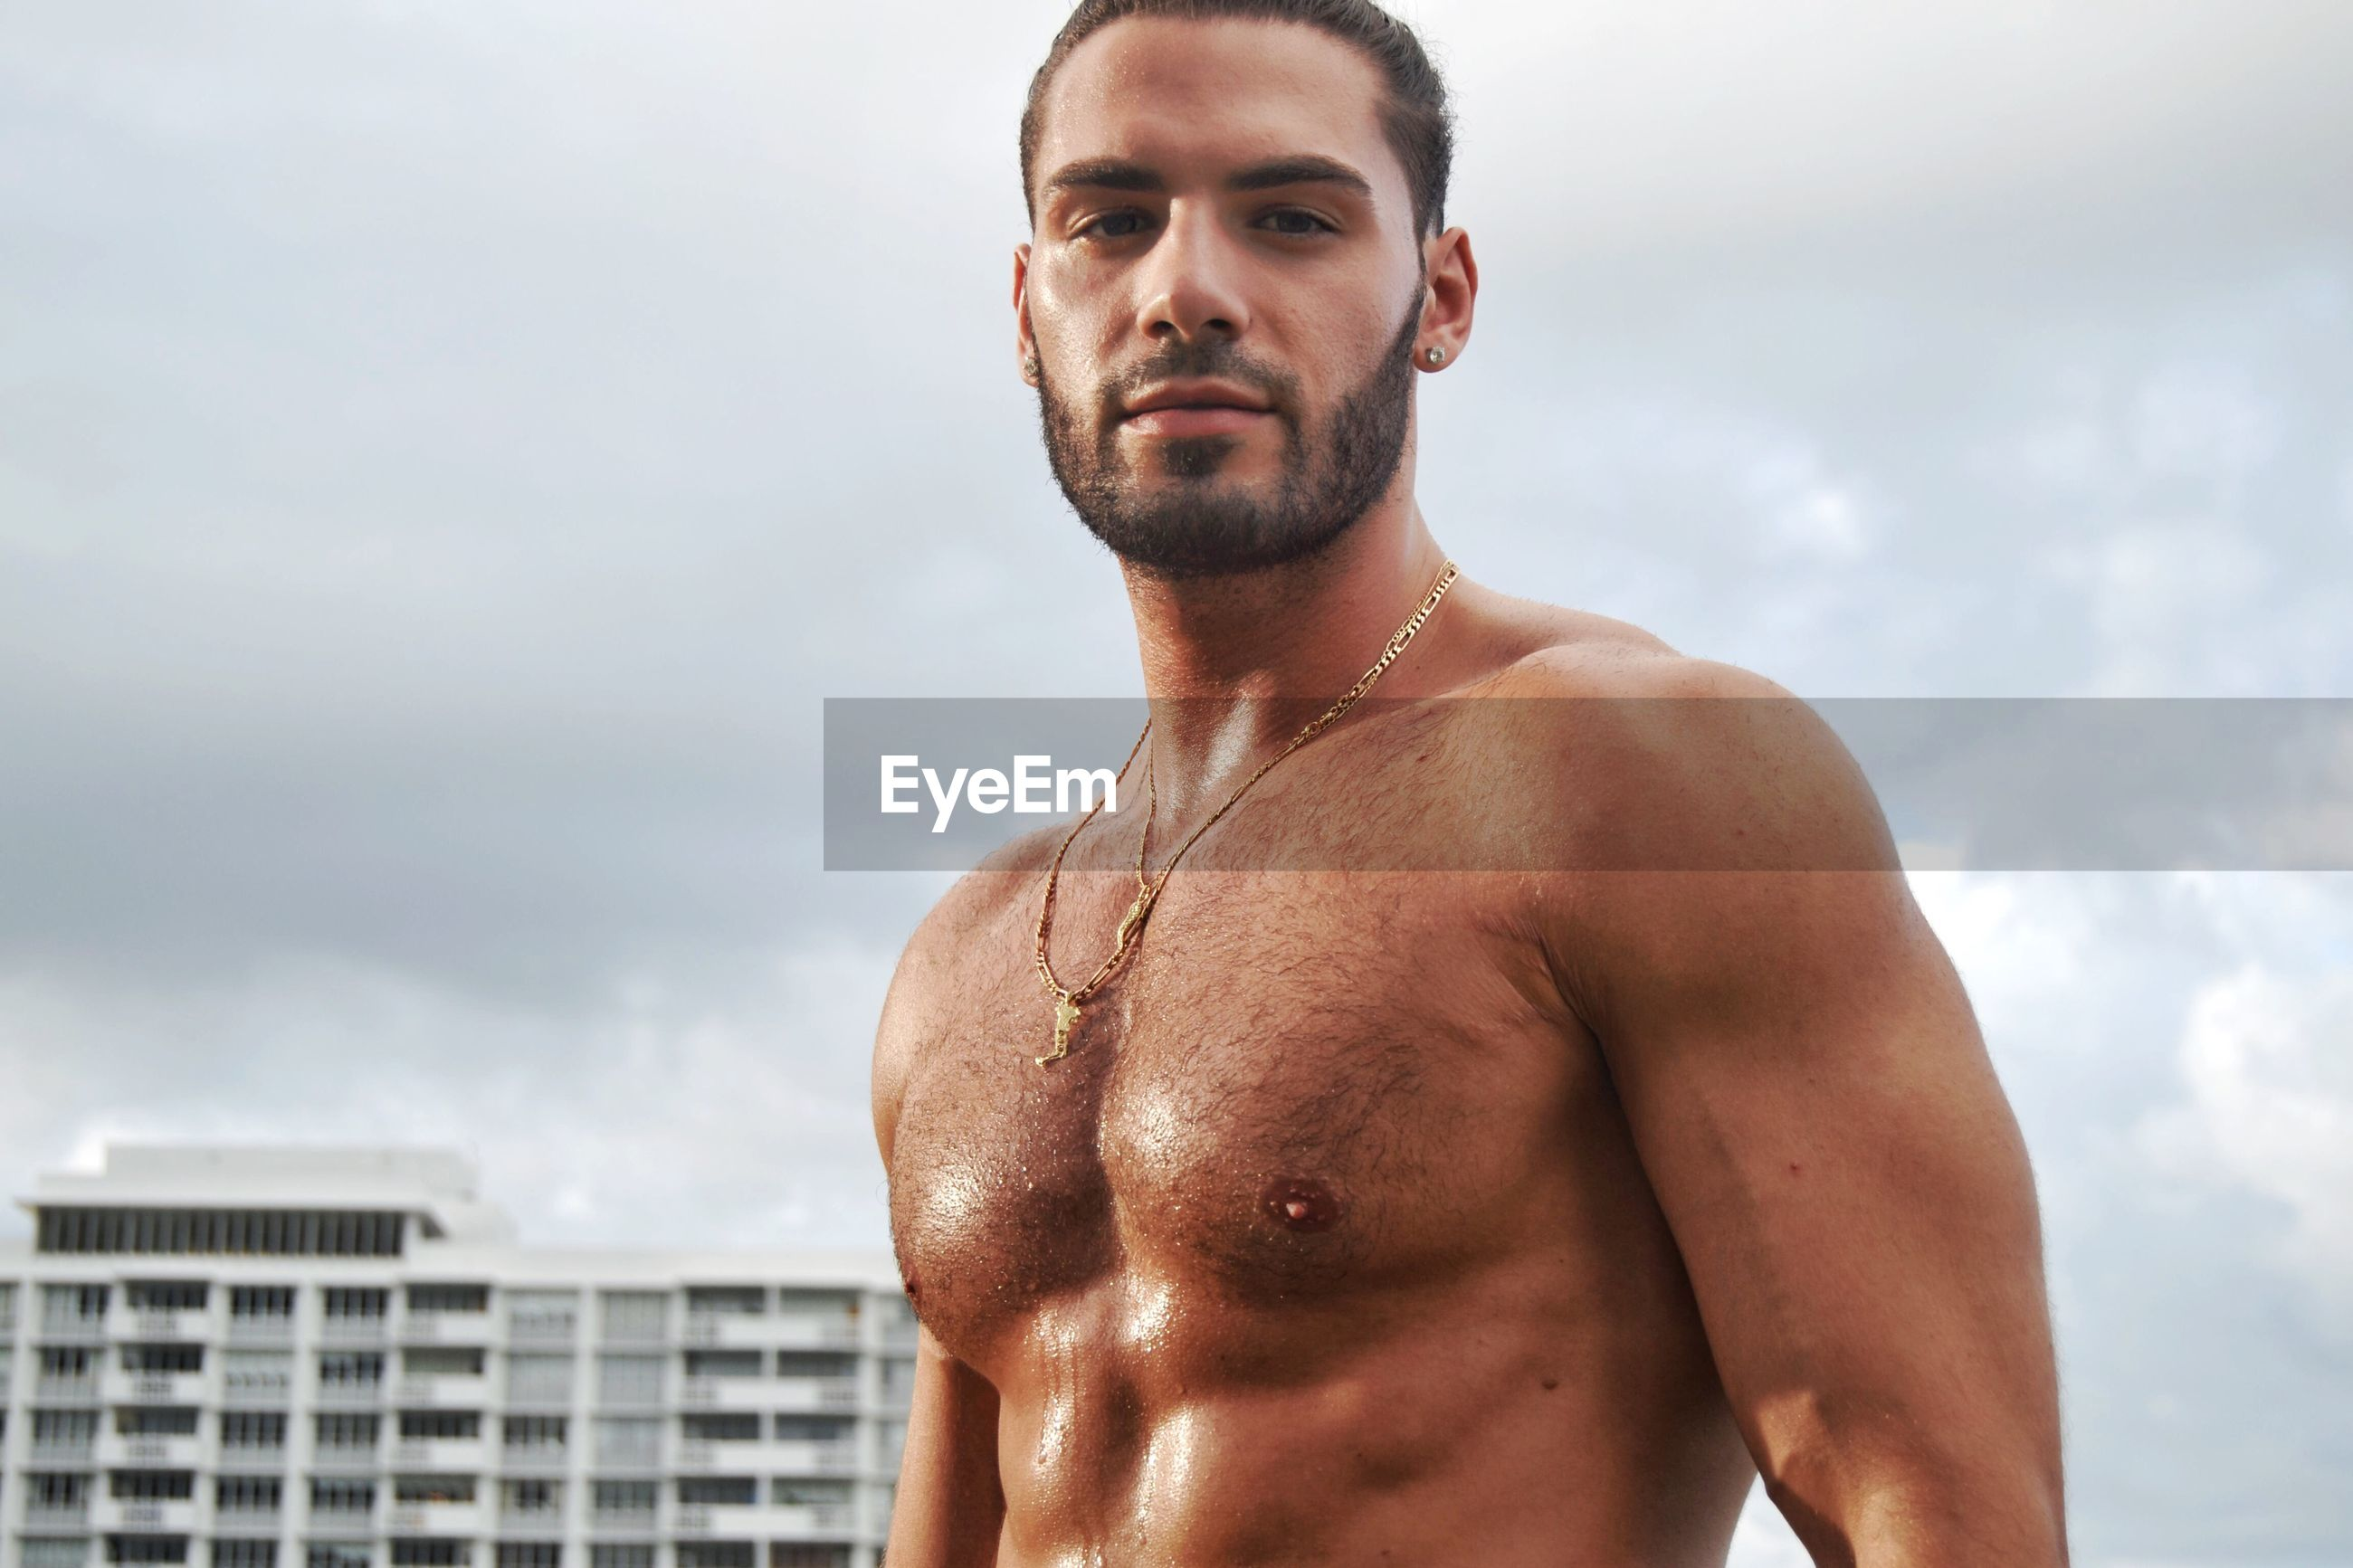 Portrait of shirtless muscular man standing against sky